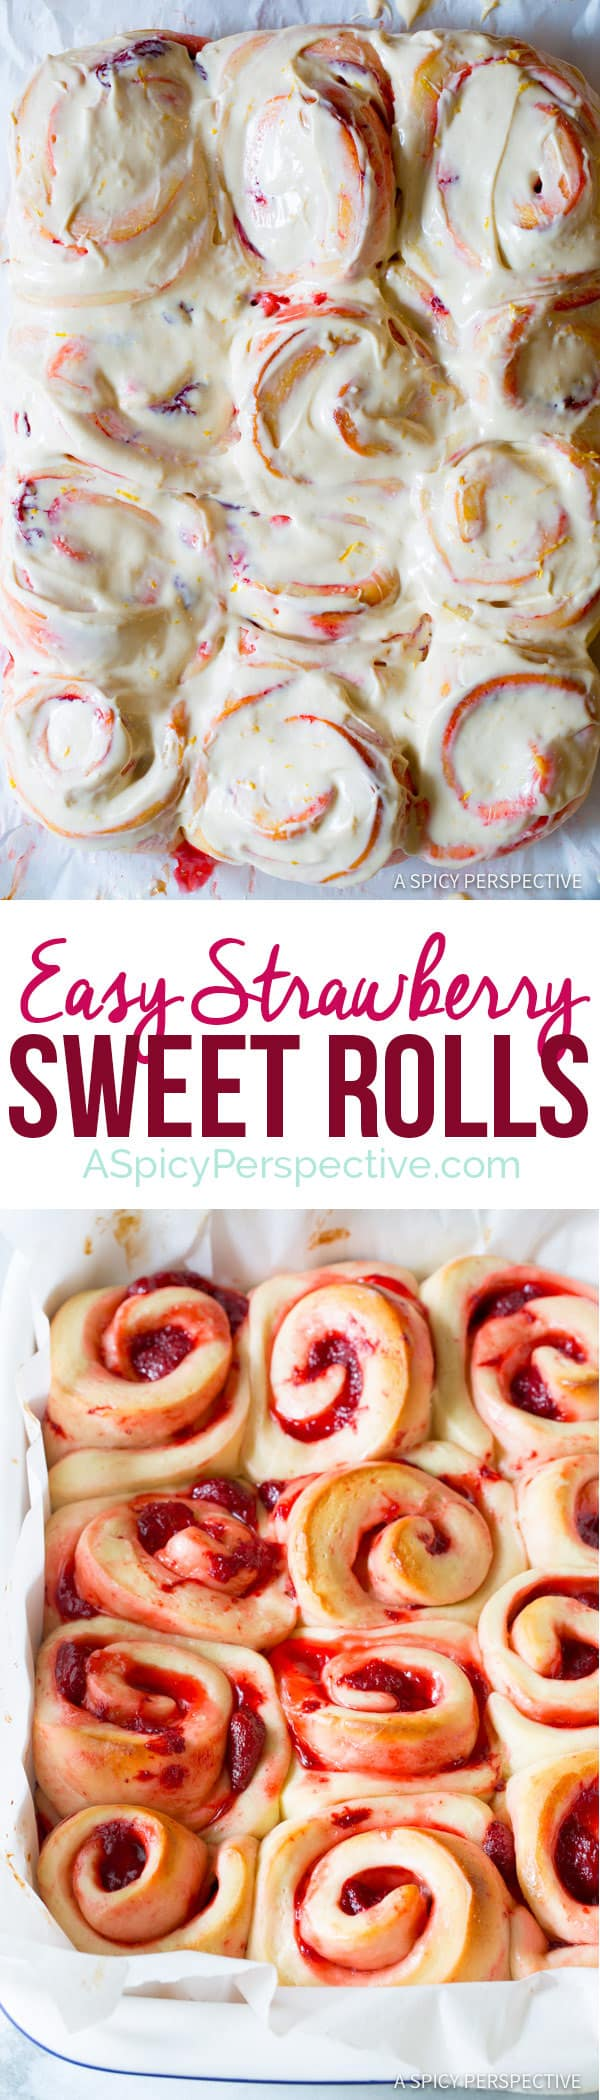 The Best Strawberry Sweet Rolls Recipe | ASpicyPerspective.com